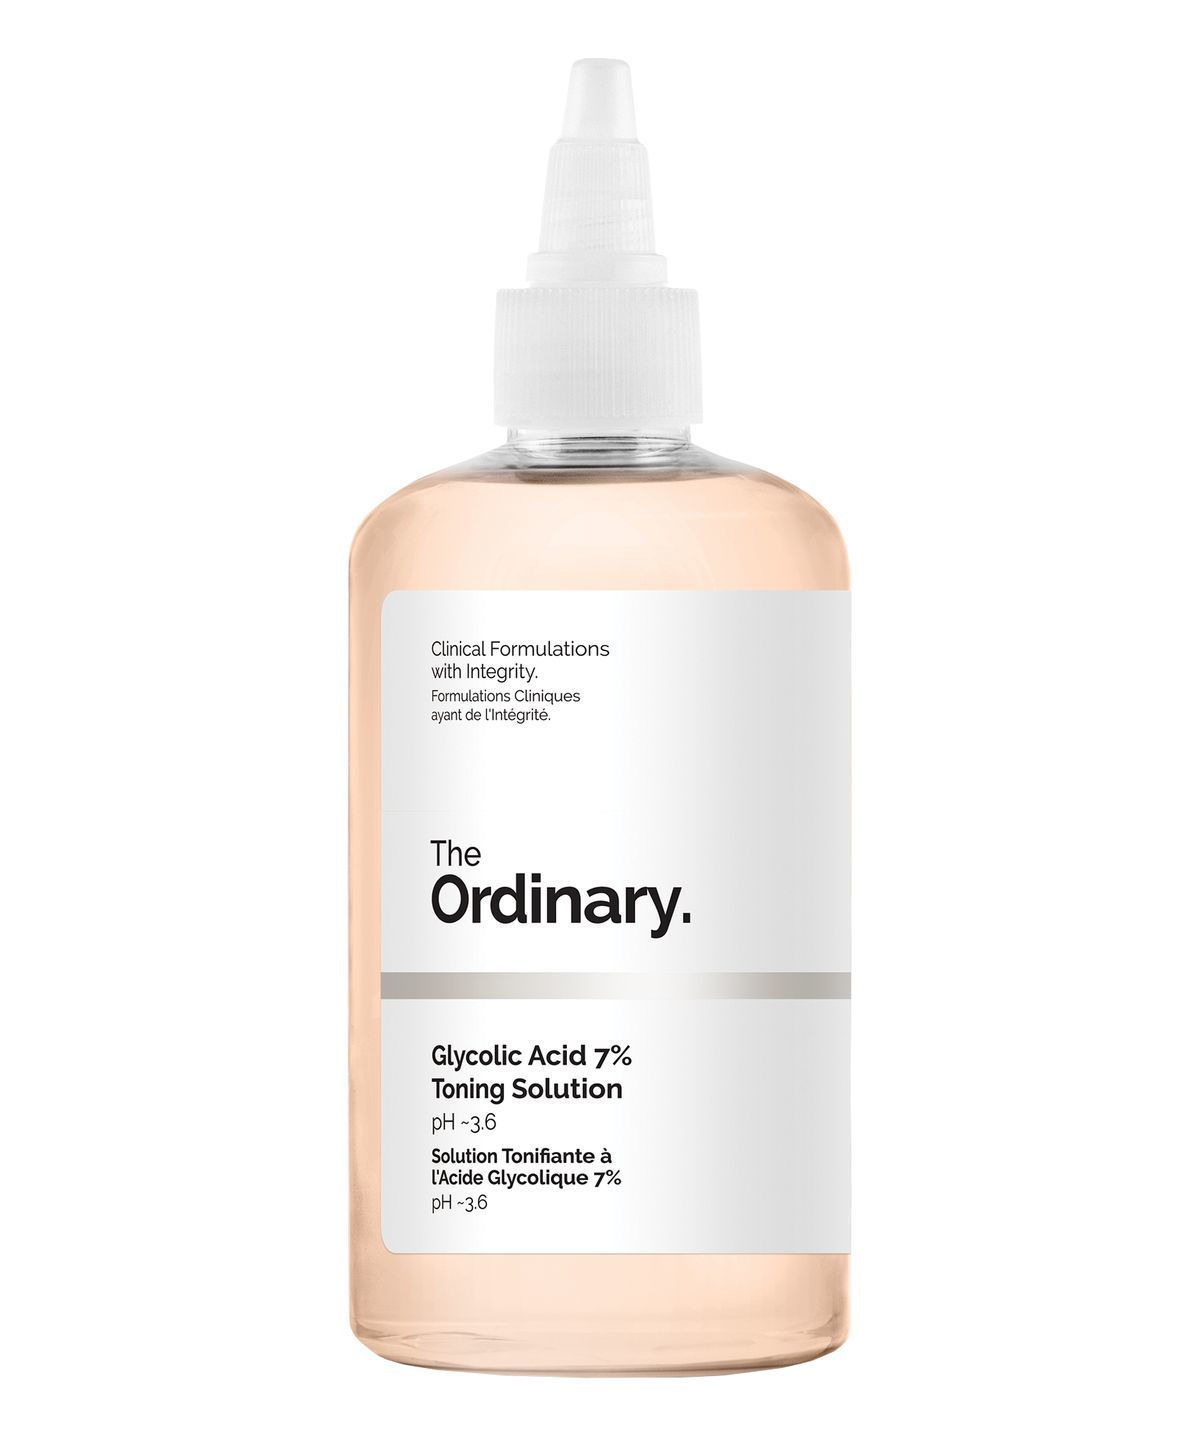 The Ordinary Glycolic Acid 7% Toning Solution тоник для лица 240 мл